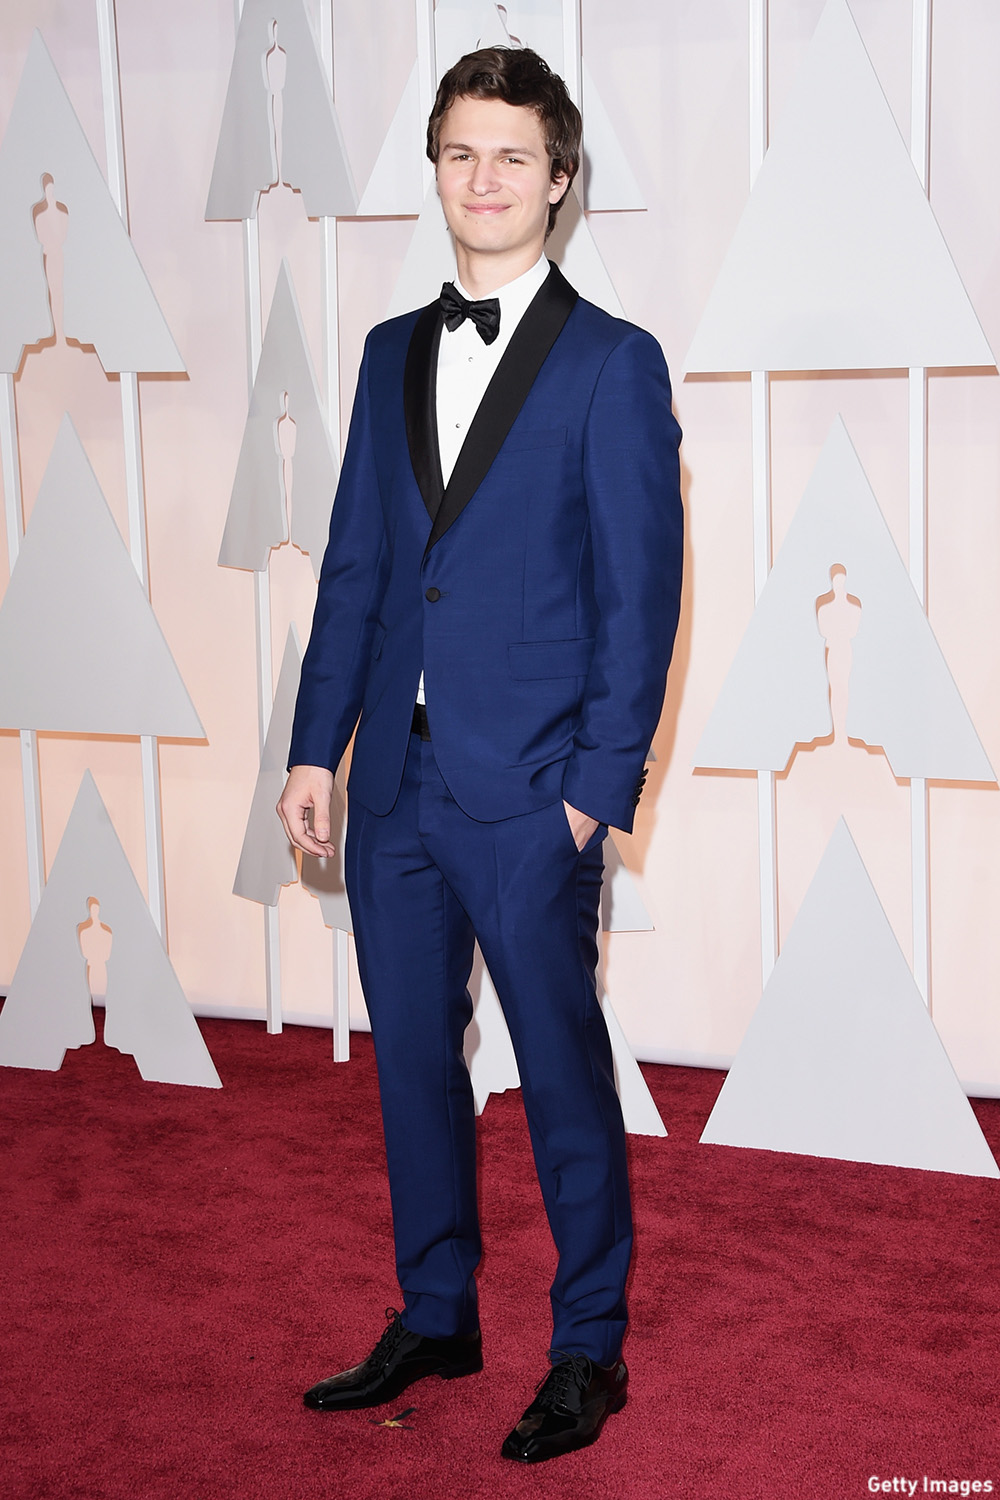 Elgort was charming in the blue jacket and black collar combo. (Photo: Getty Images)